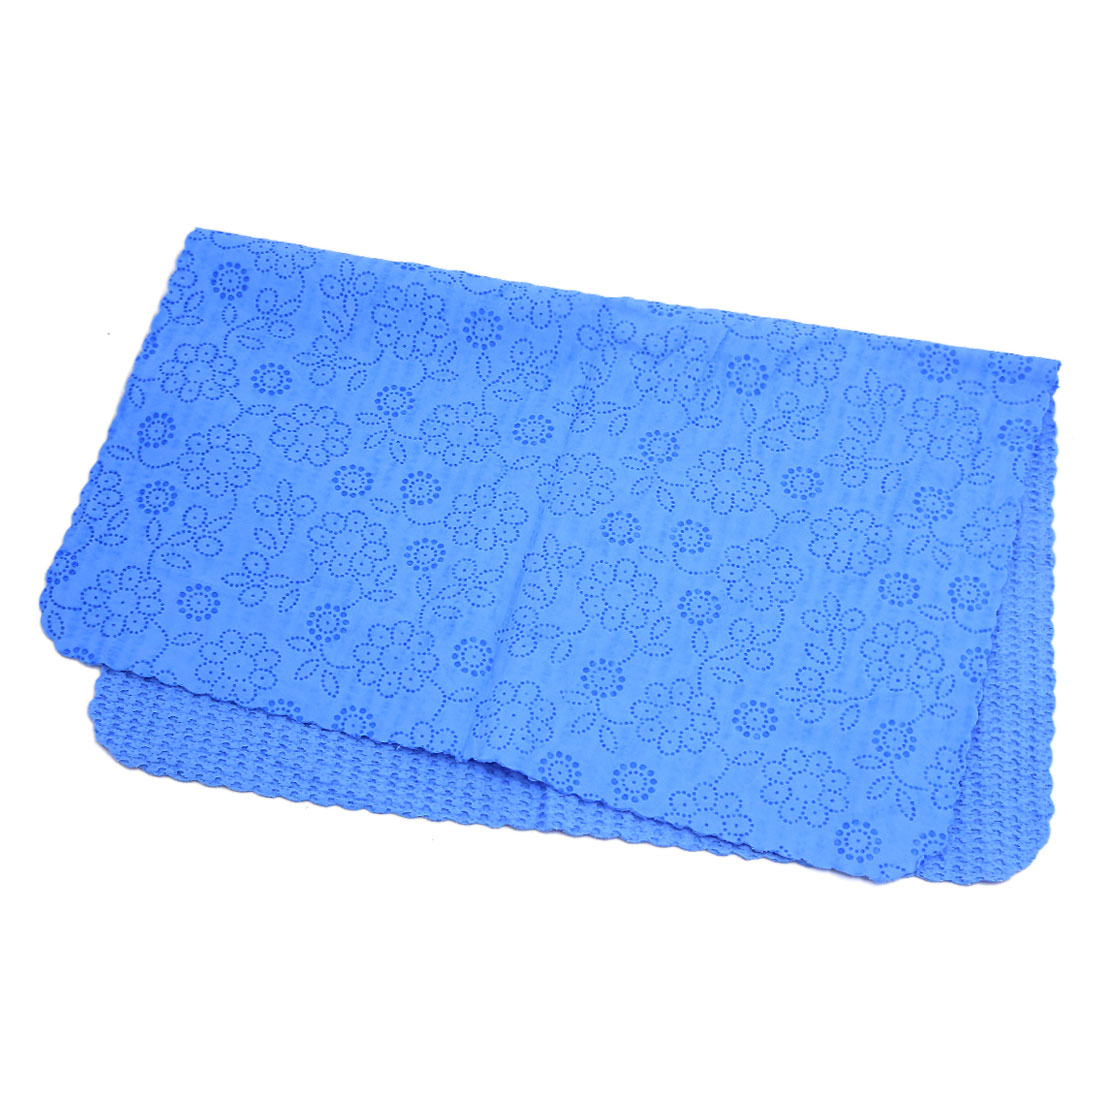 43.3 x 32.6cm Blue Faux Chamois Leather Cleaning Cloth Hair Drying Towel